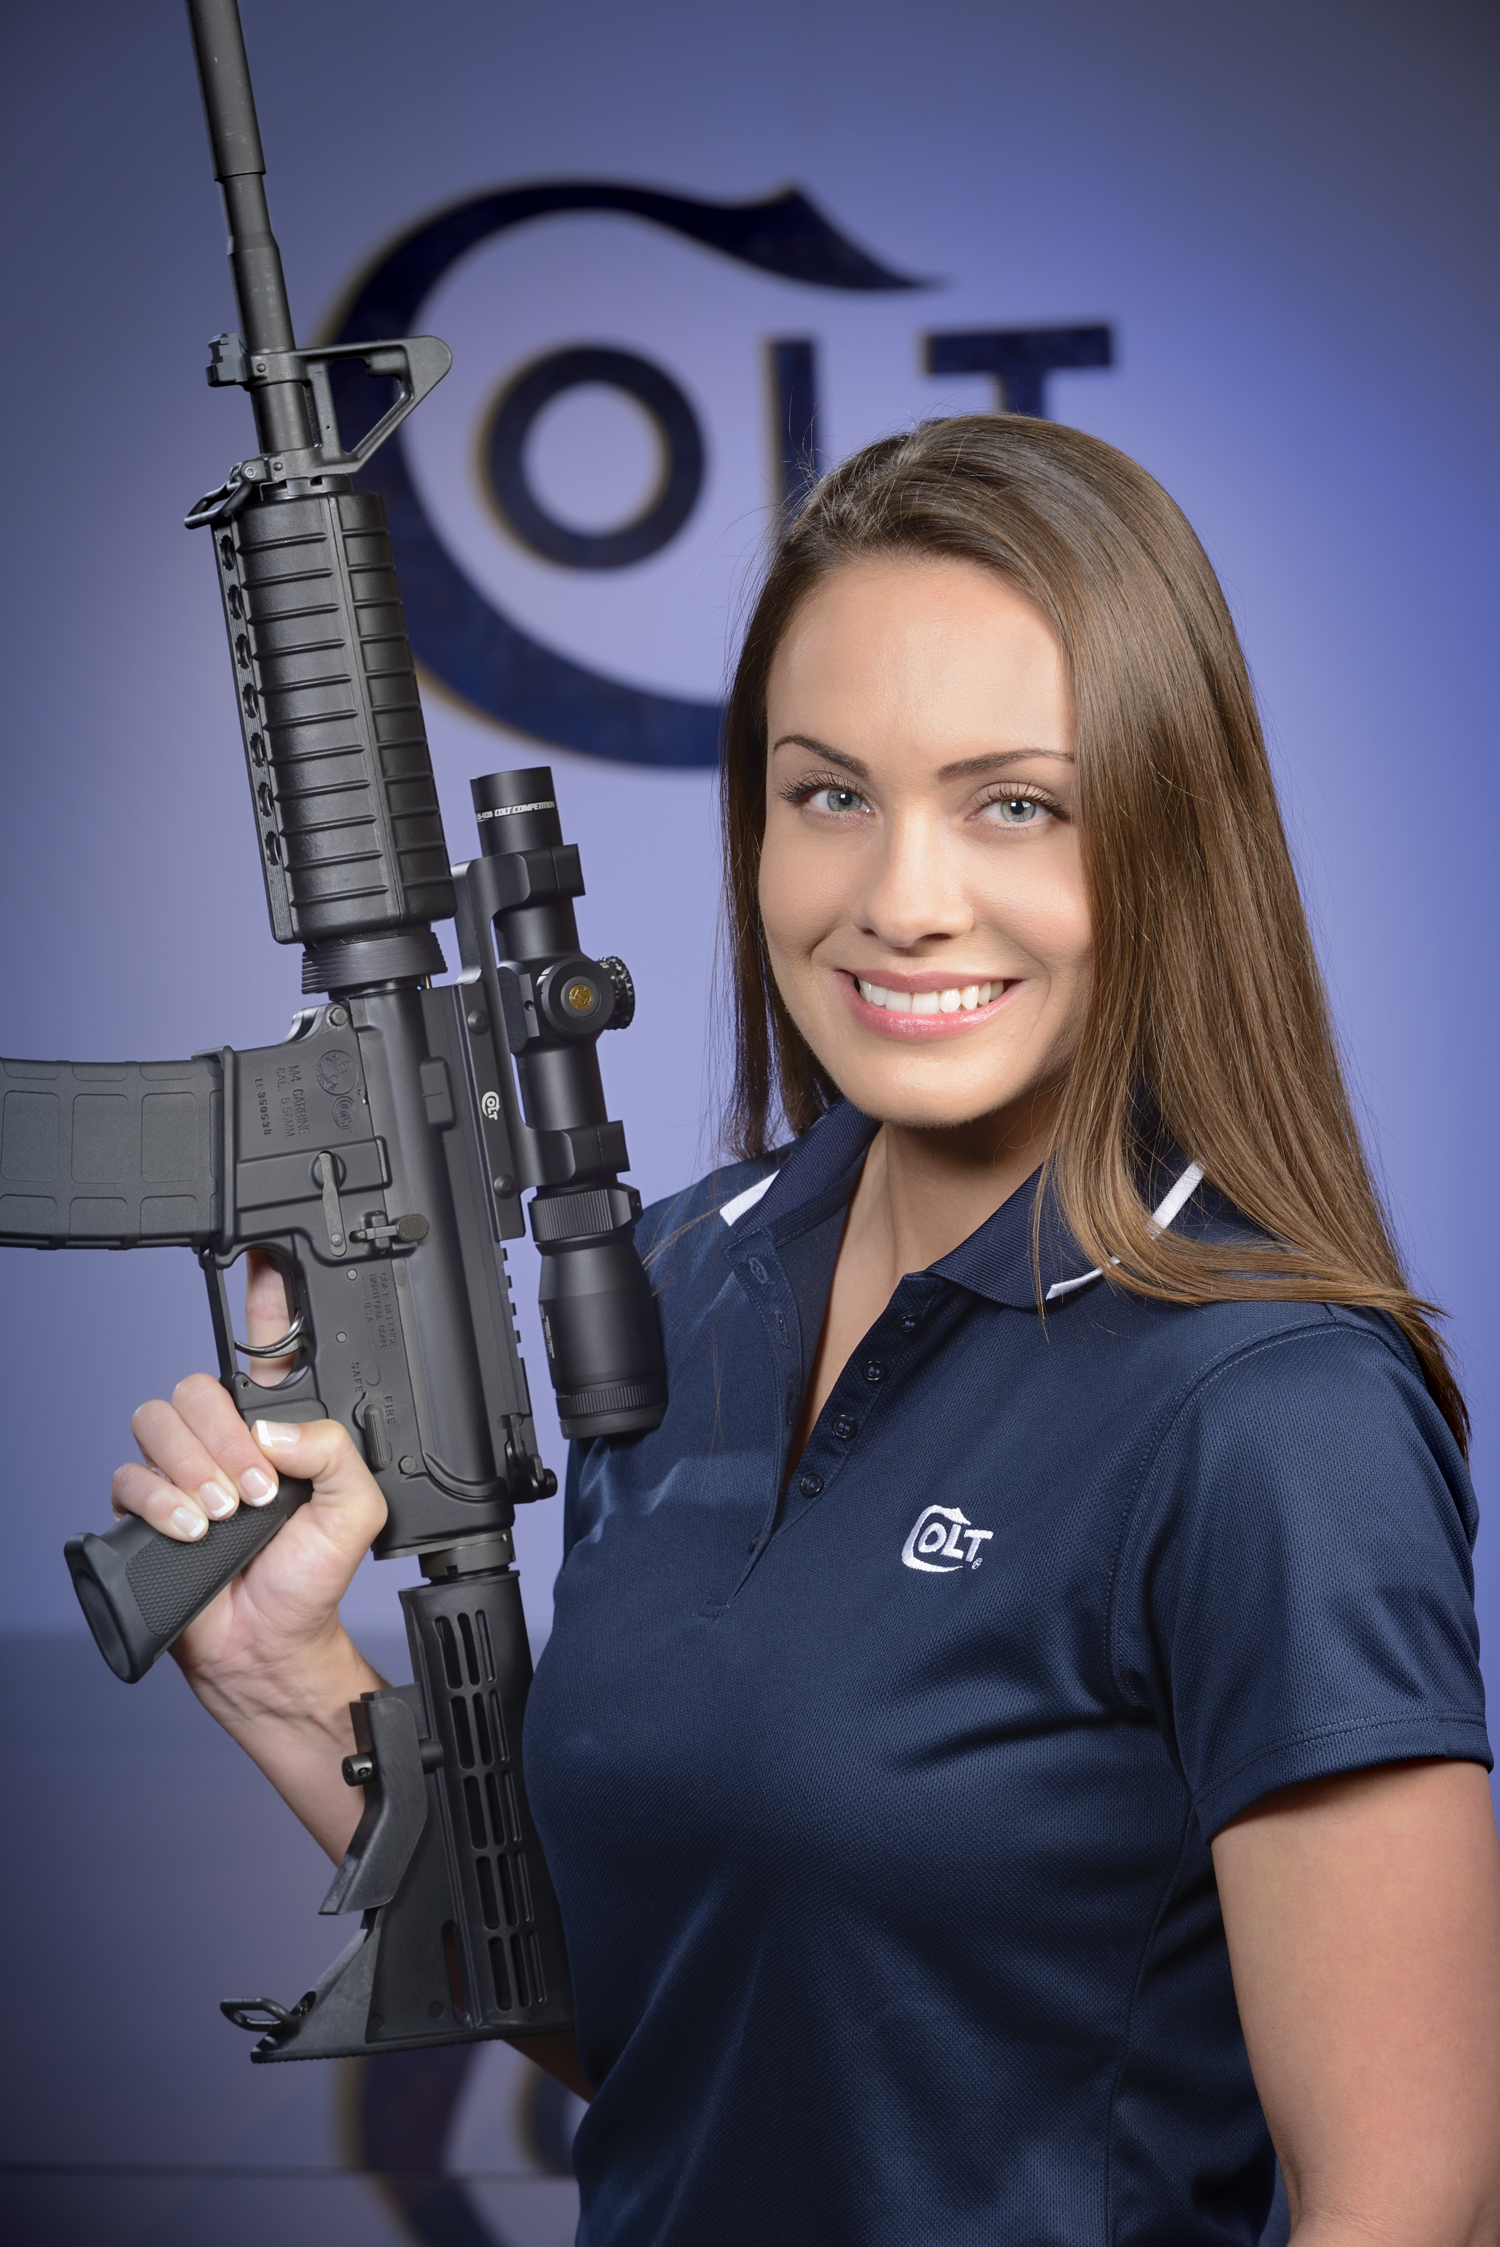 Team Colt's Maggie Reese Wins Third IronMaiden Title at MGM Ironman 3-Gun Match